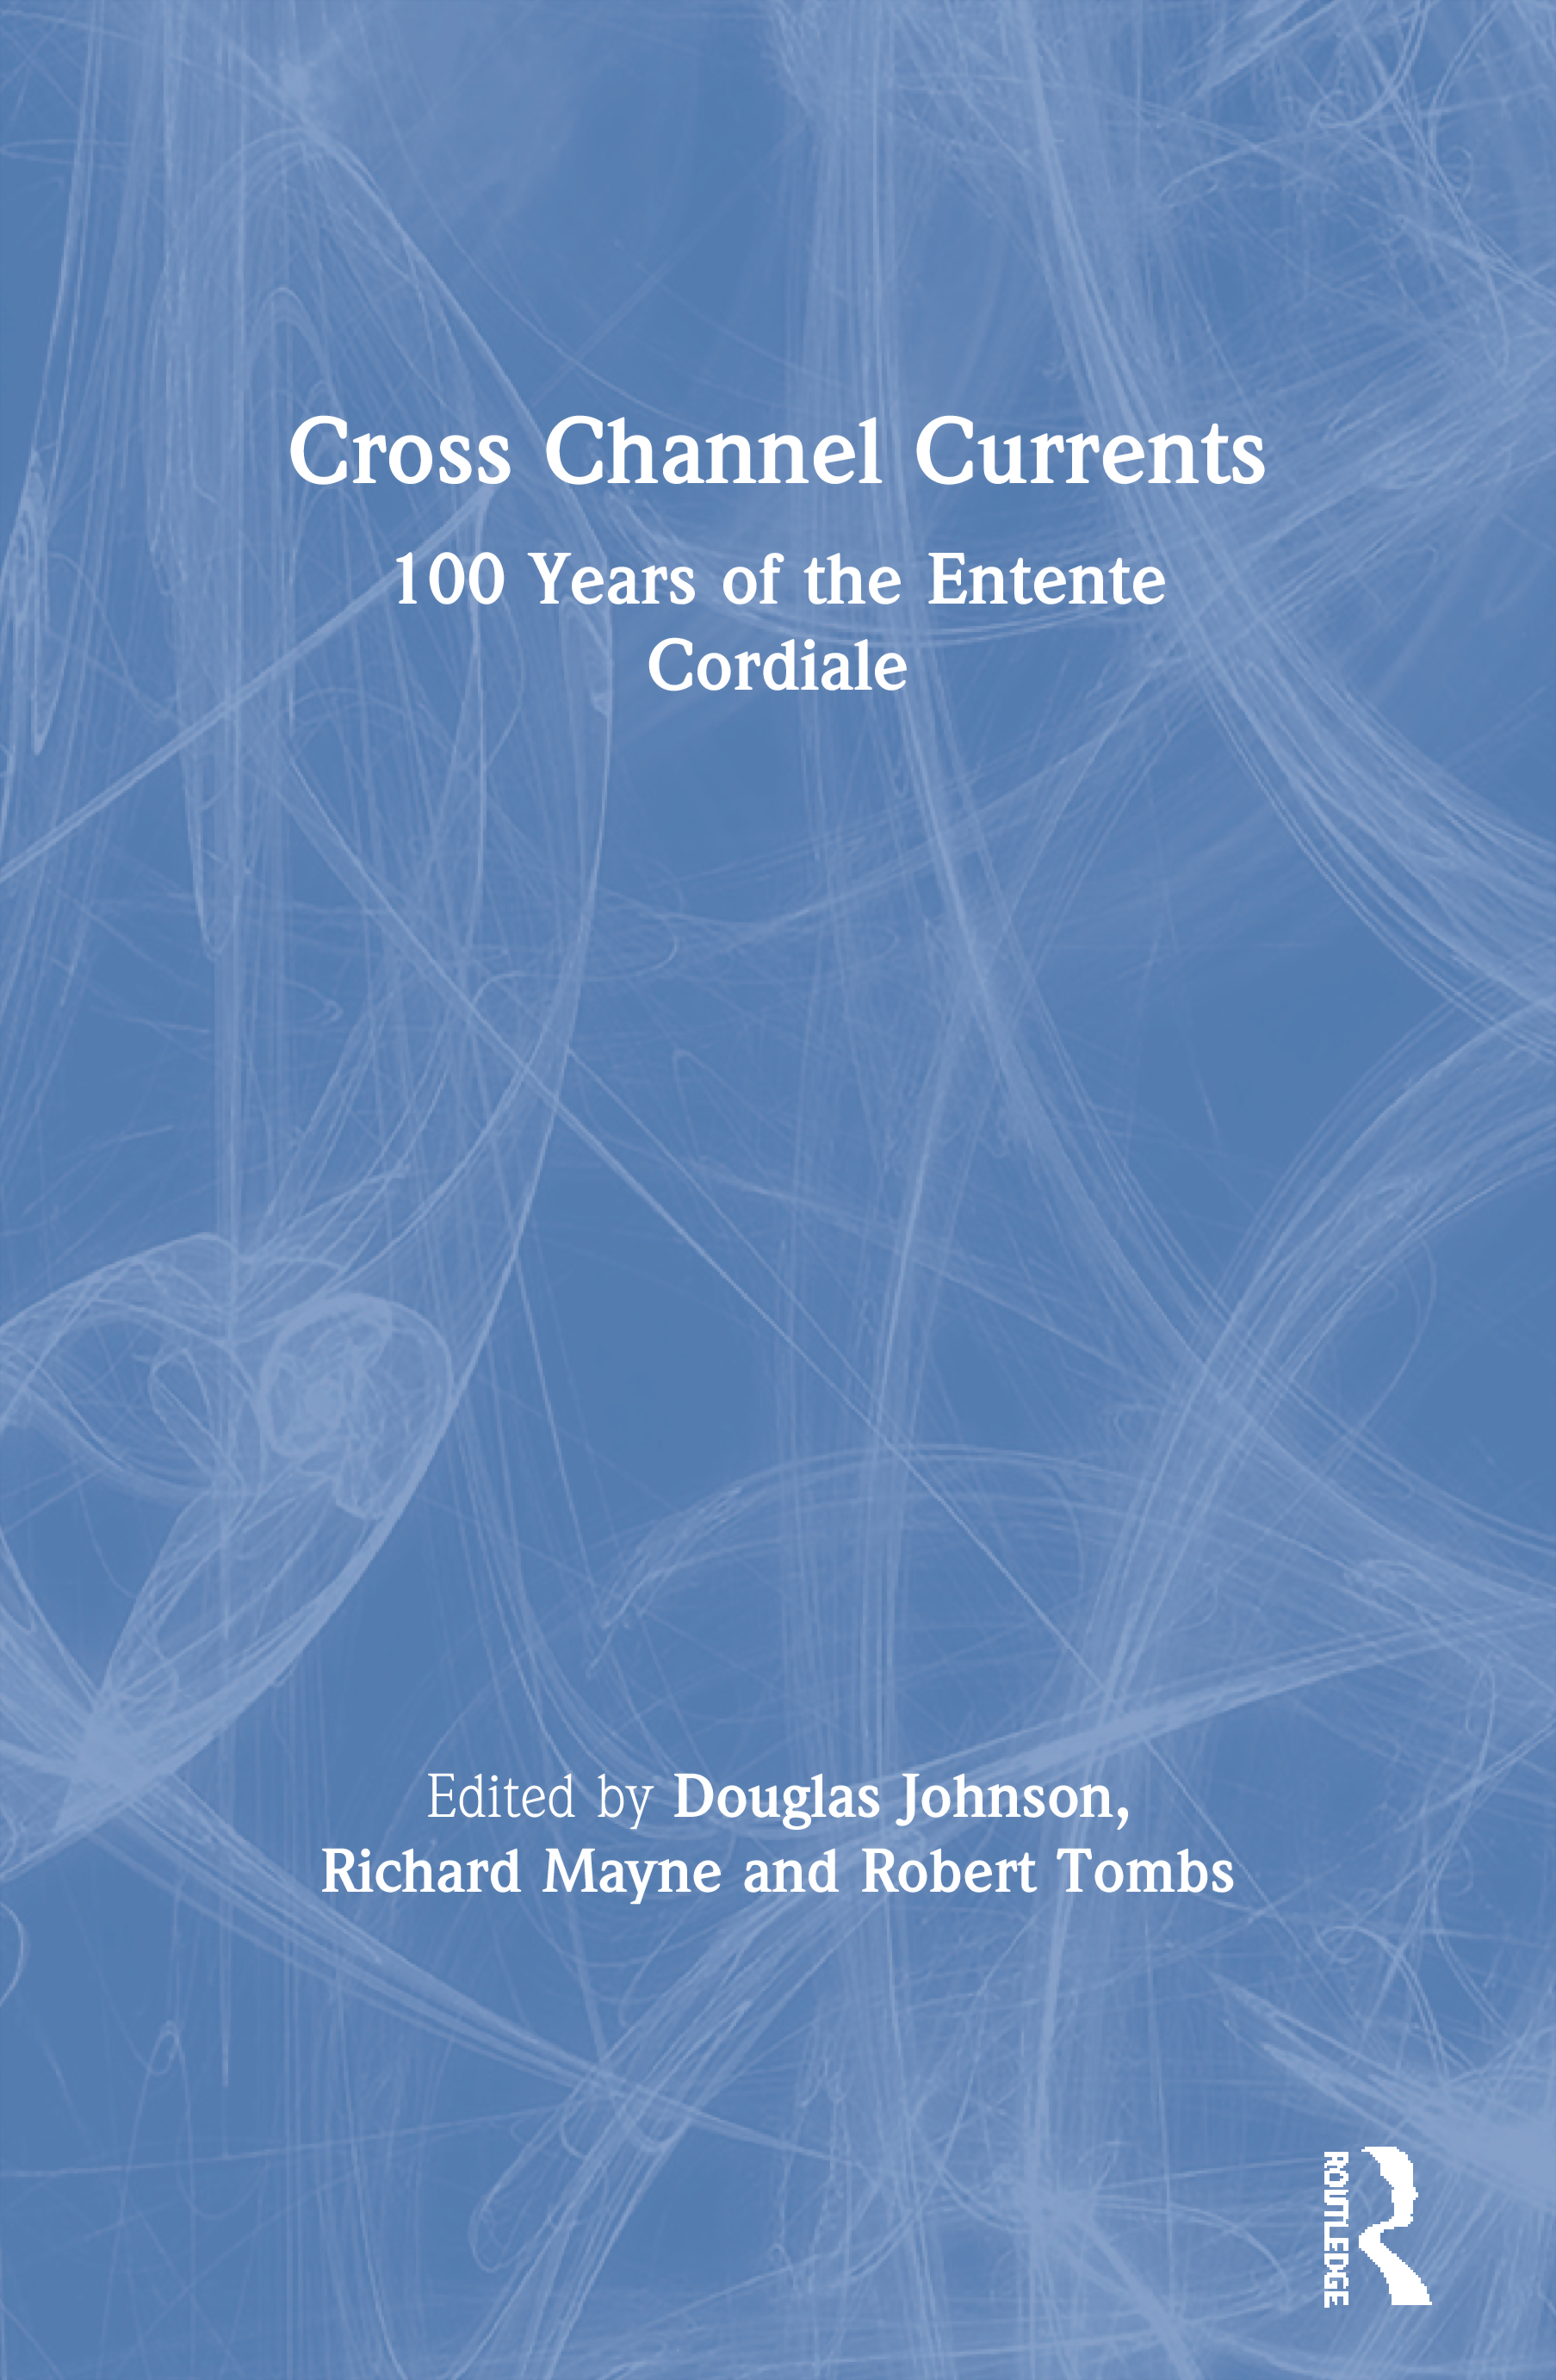 Cross Channel Currents: 100 Years of the Entente Cordiale, 1st Edition (Paperback) book cover